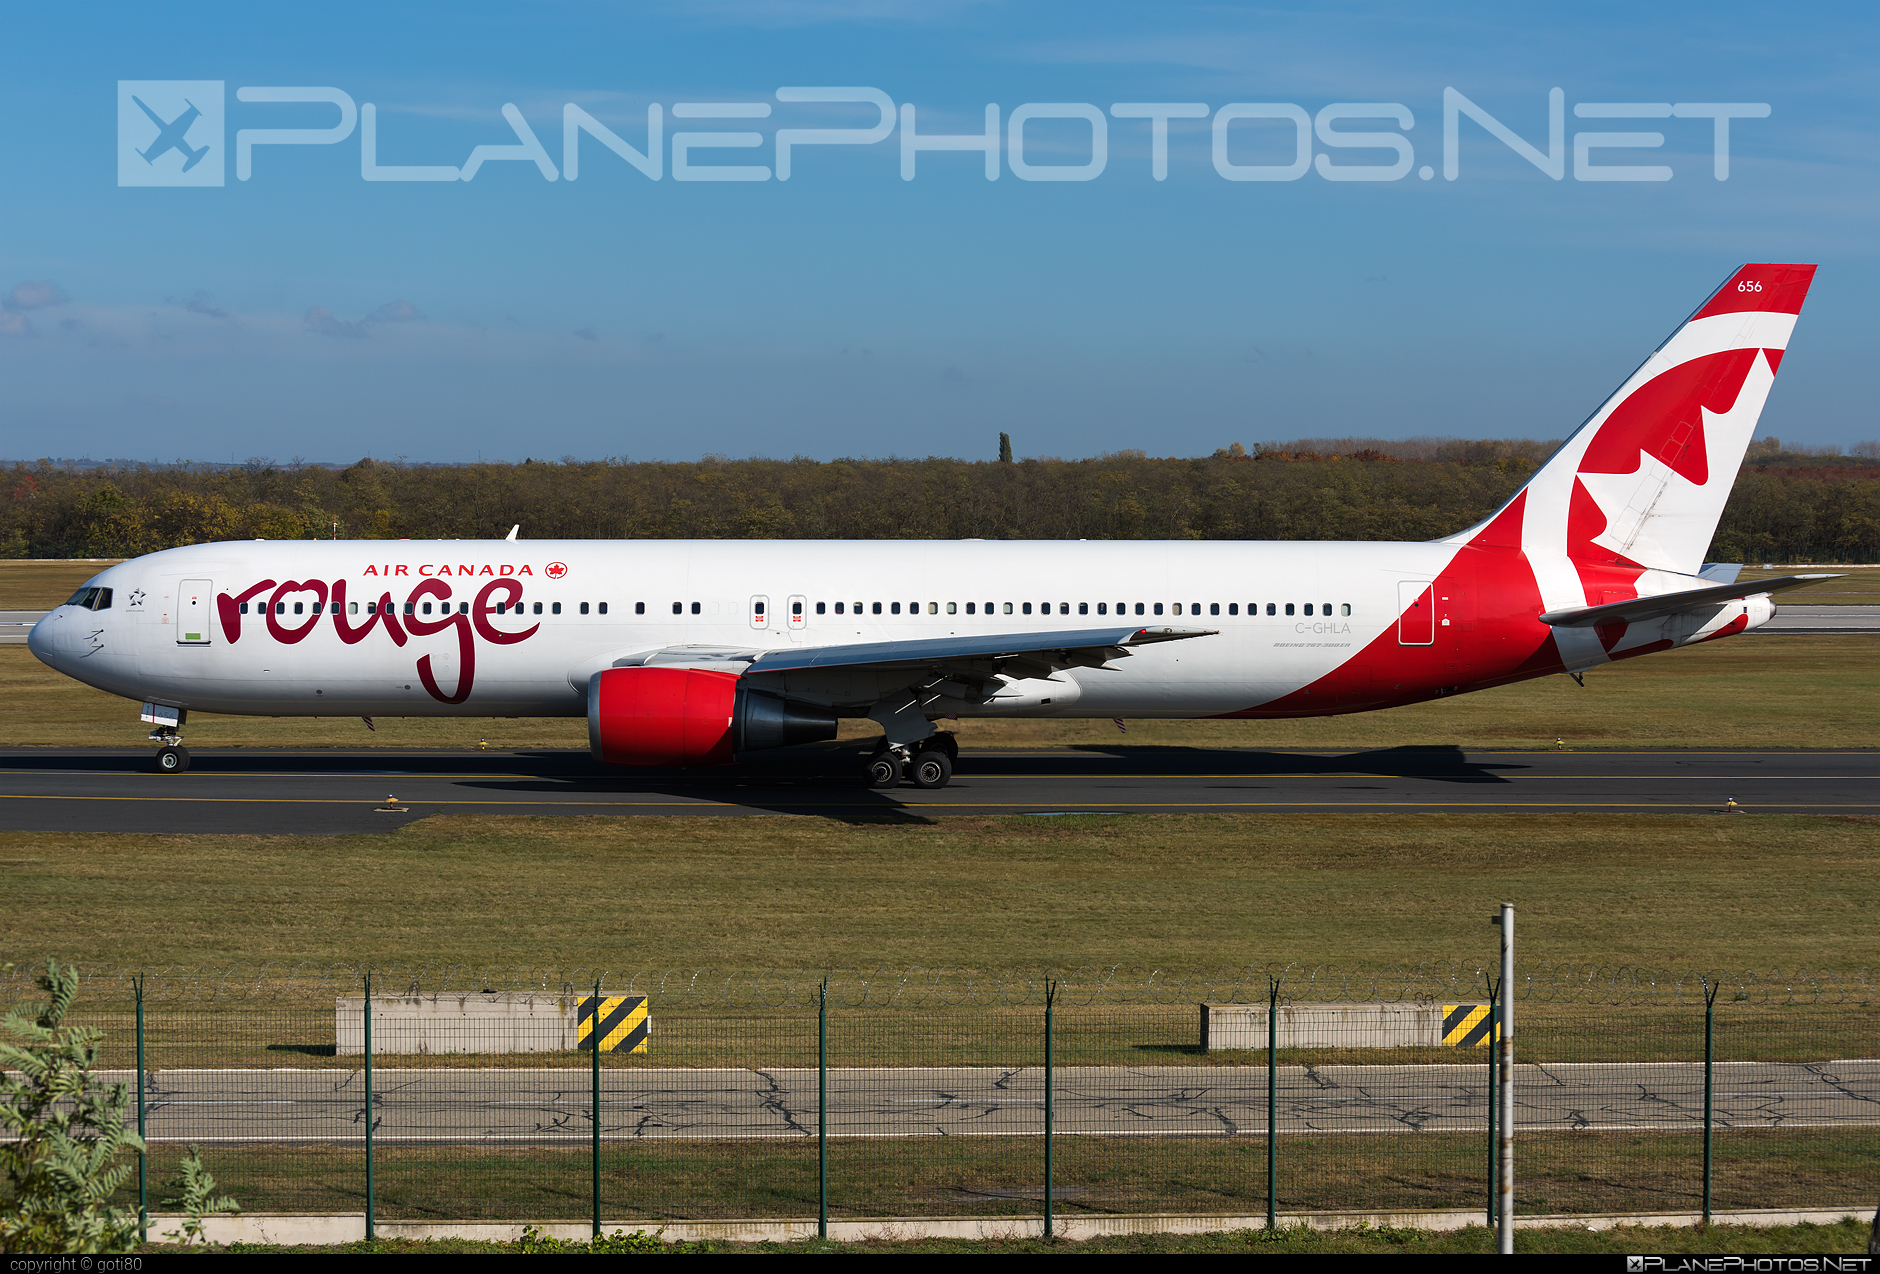 Boeing 767-300ER - C-GHLA operated by Air Canada Rouge #aircanadarouge #b767 #b767er #boeing #boeing767